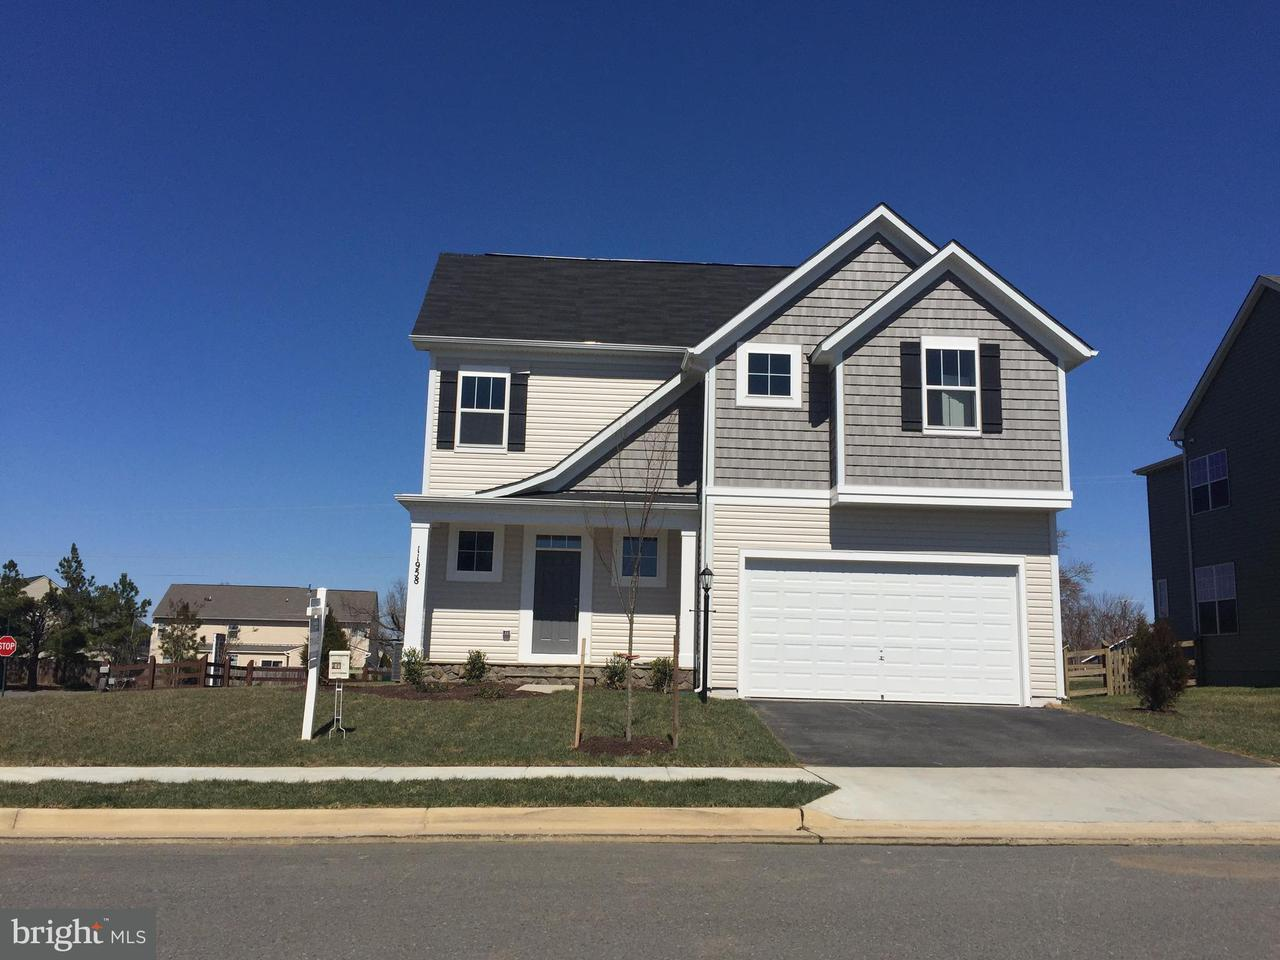 Single Family Home for Sale at 11958 BLUE VIOLET WAY 11958 BLUE VIOLET WAY Bristow, Virginia 20136 United States